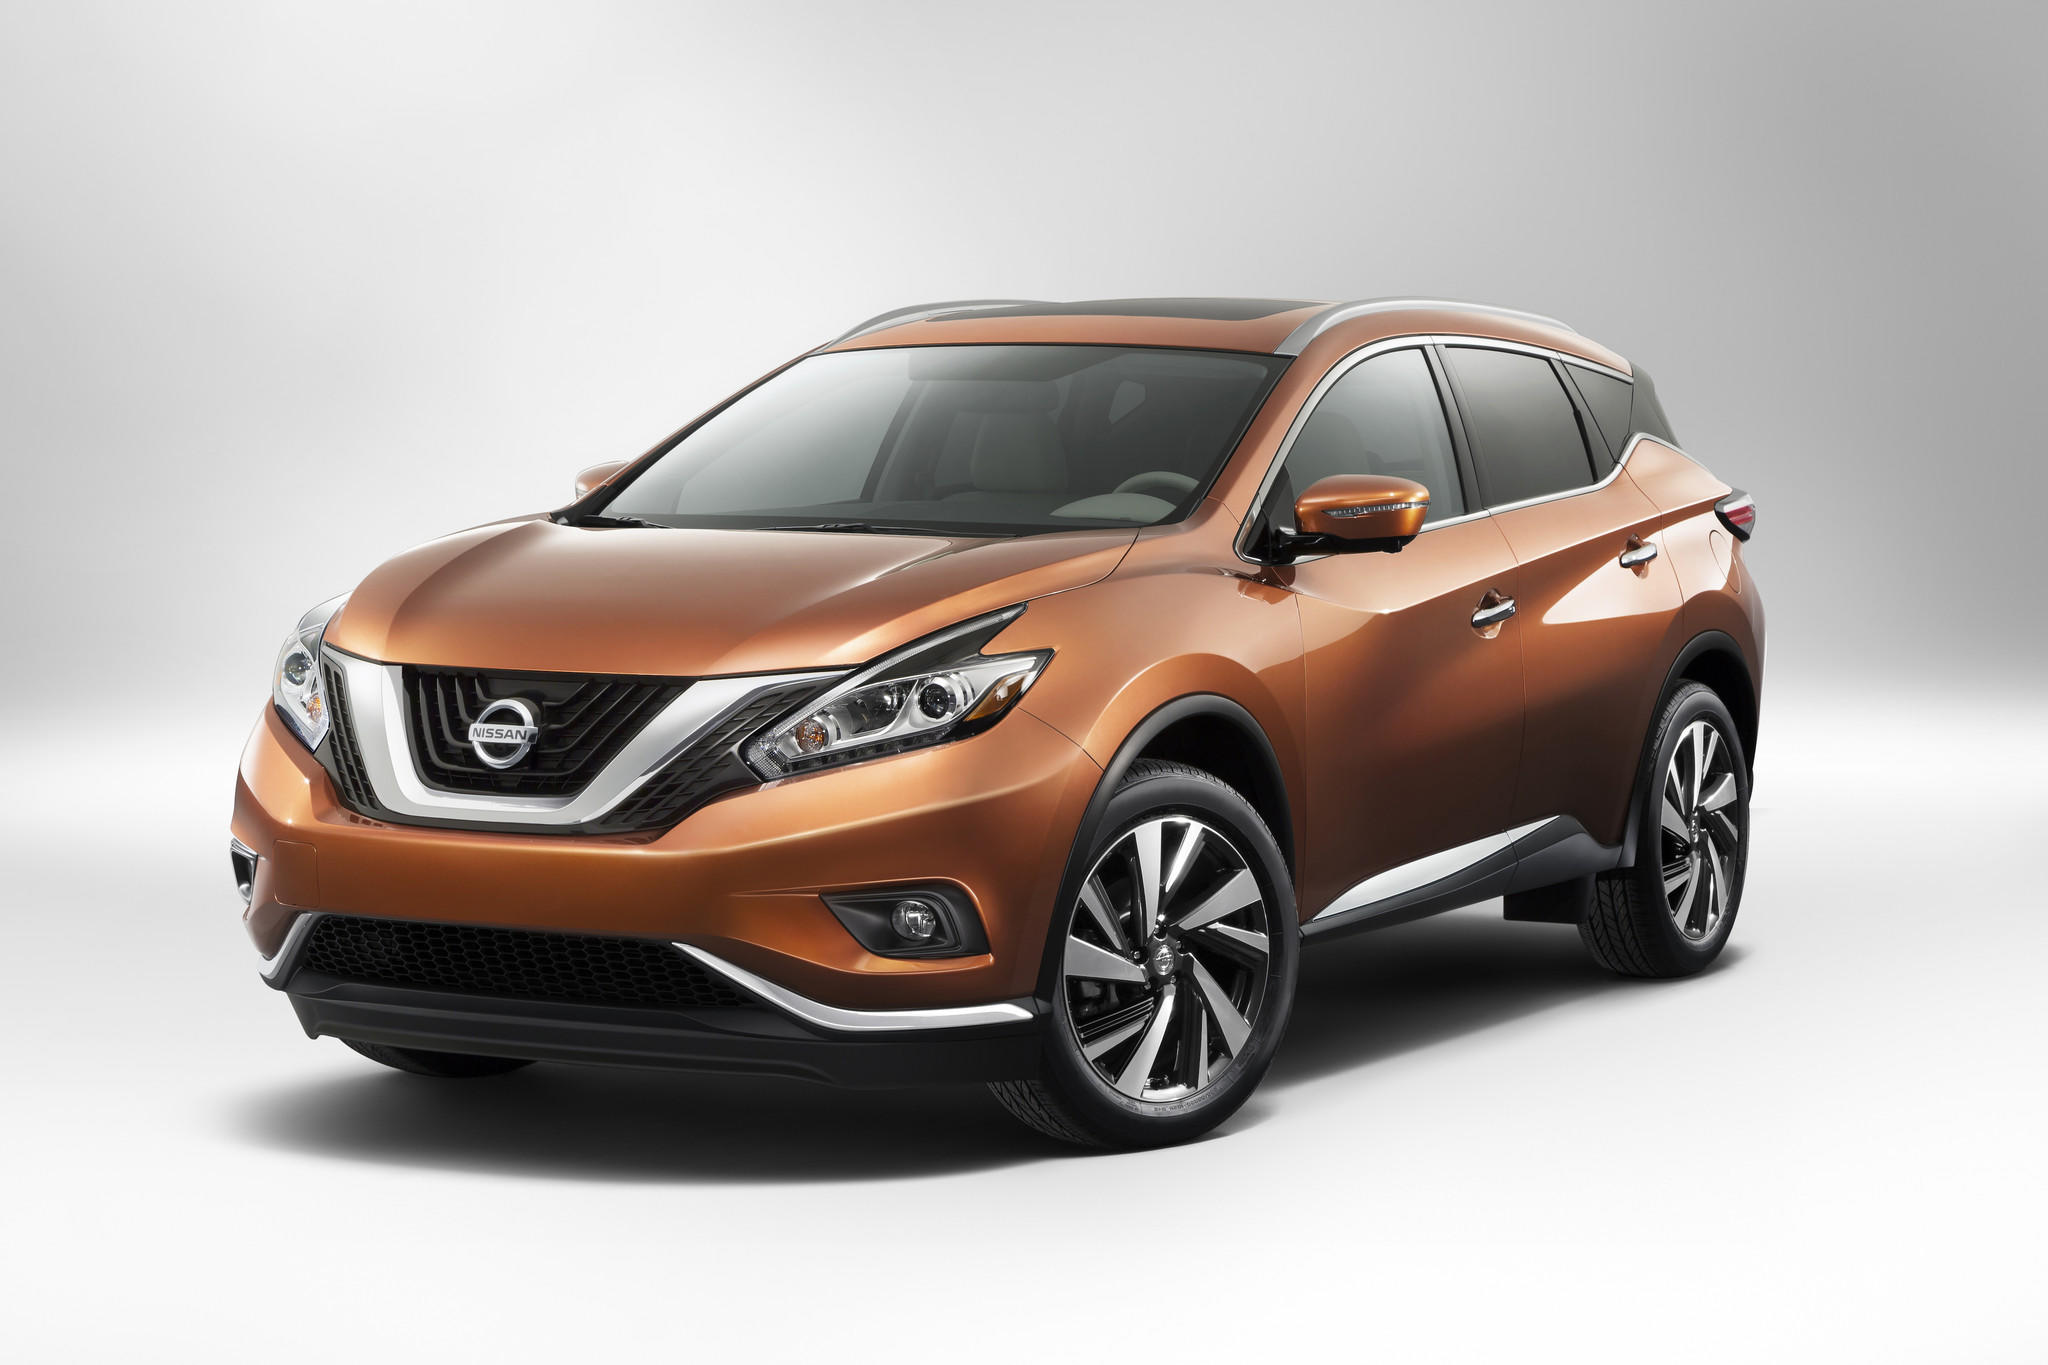 The 2015 nissan murano will be unveiled at the 2014 new york auto show this week